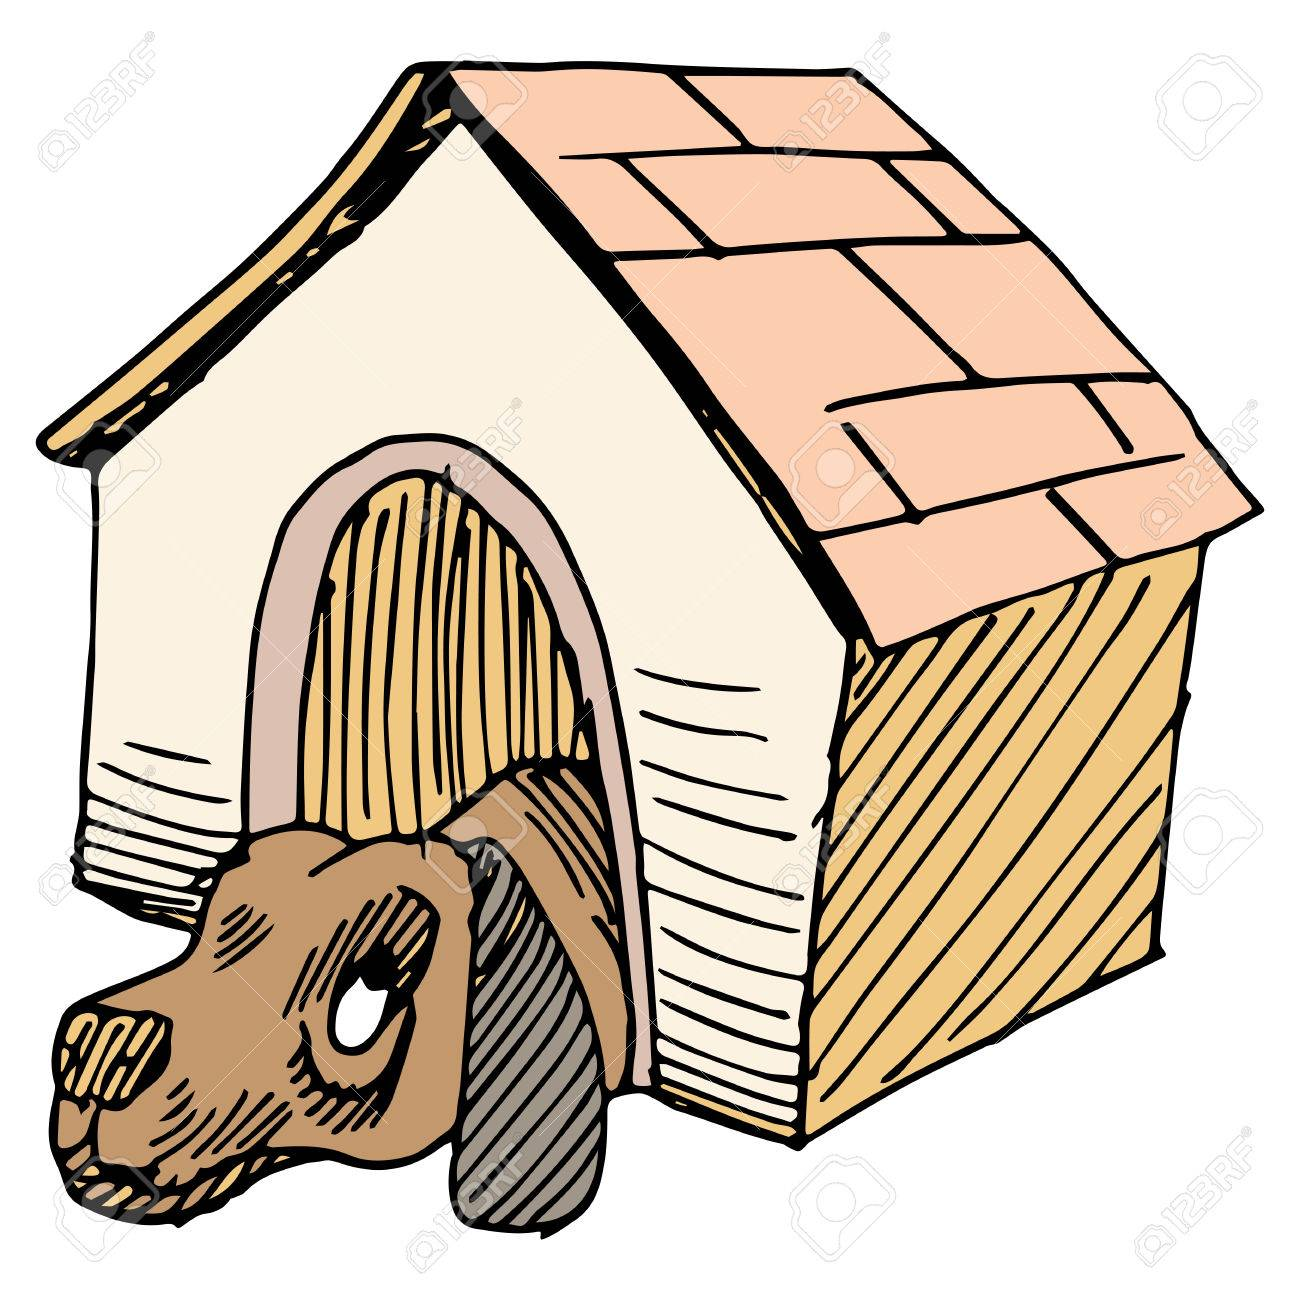 1300x1300 An Image Of A Dog Alone In A Doghouse. Royalty Free Cliparts